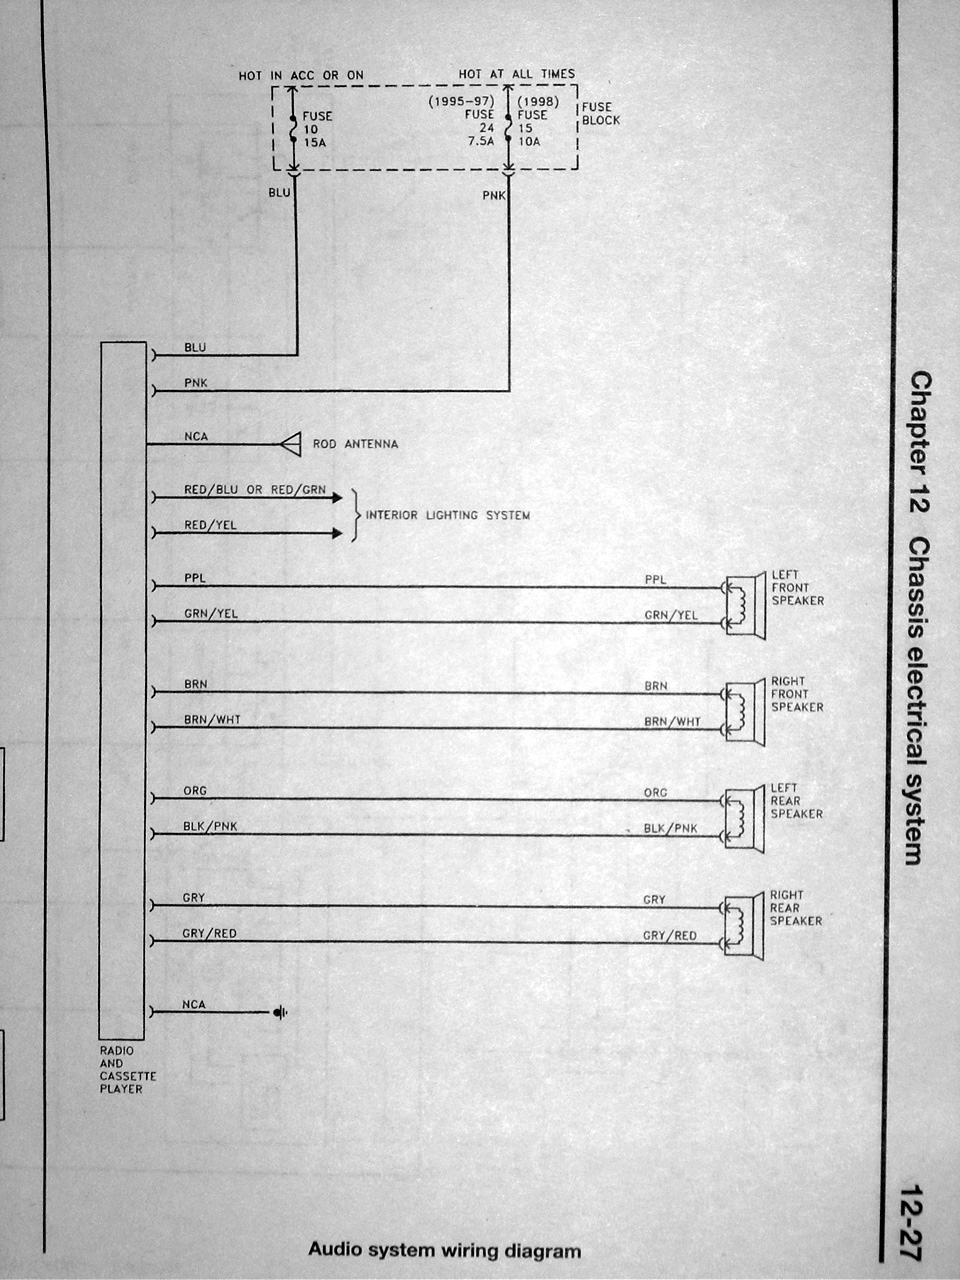 DSC01849 wiring diagram thread *useful info* nissan forum 2003 nissan maxima stereo wiring diagram at reclaimingppi.co